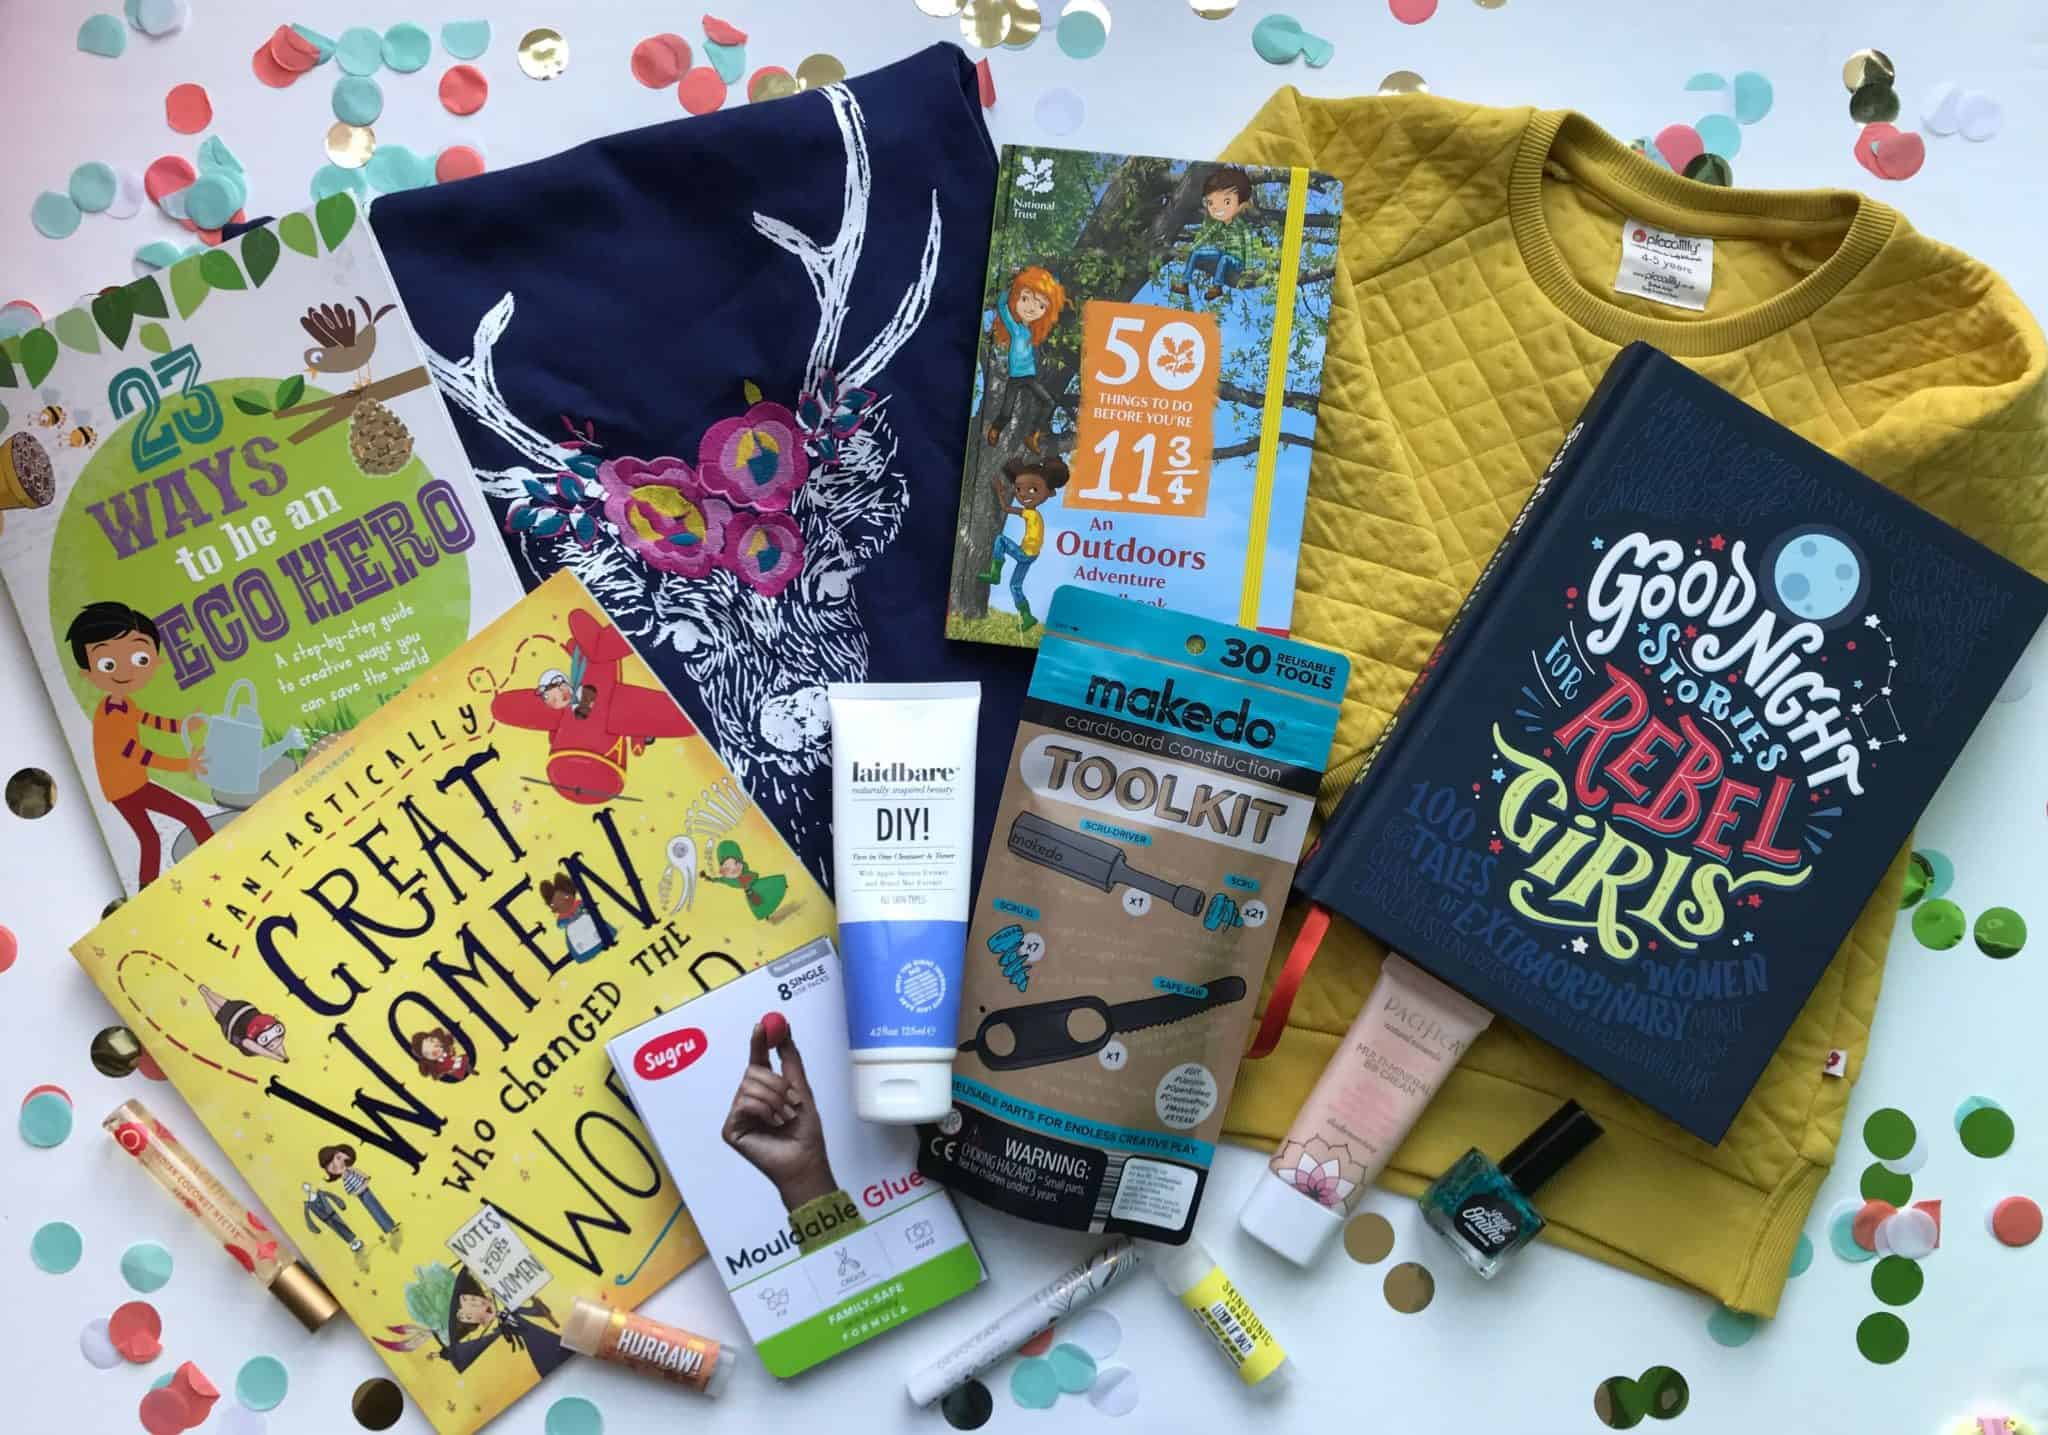 Inspirational, educational, environmental and ethical gifts for kids